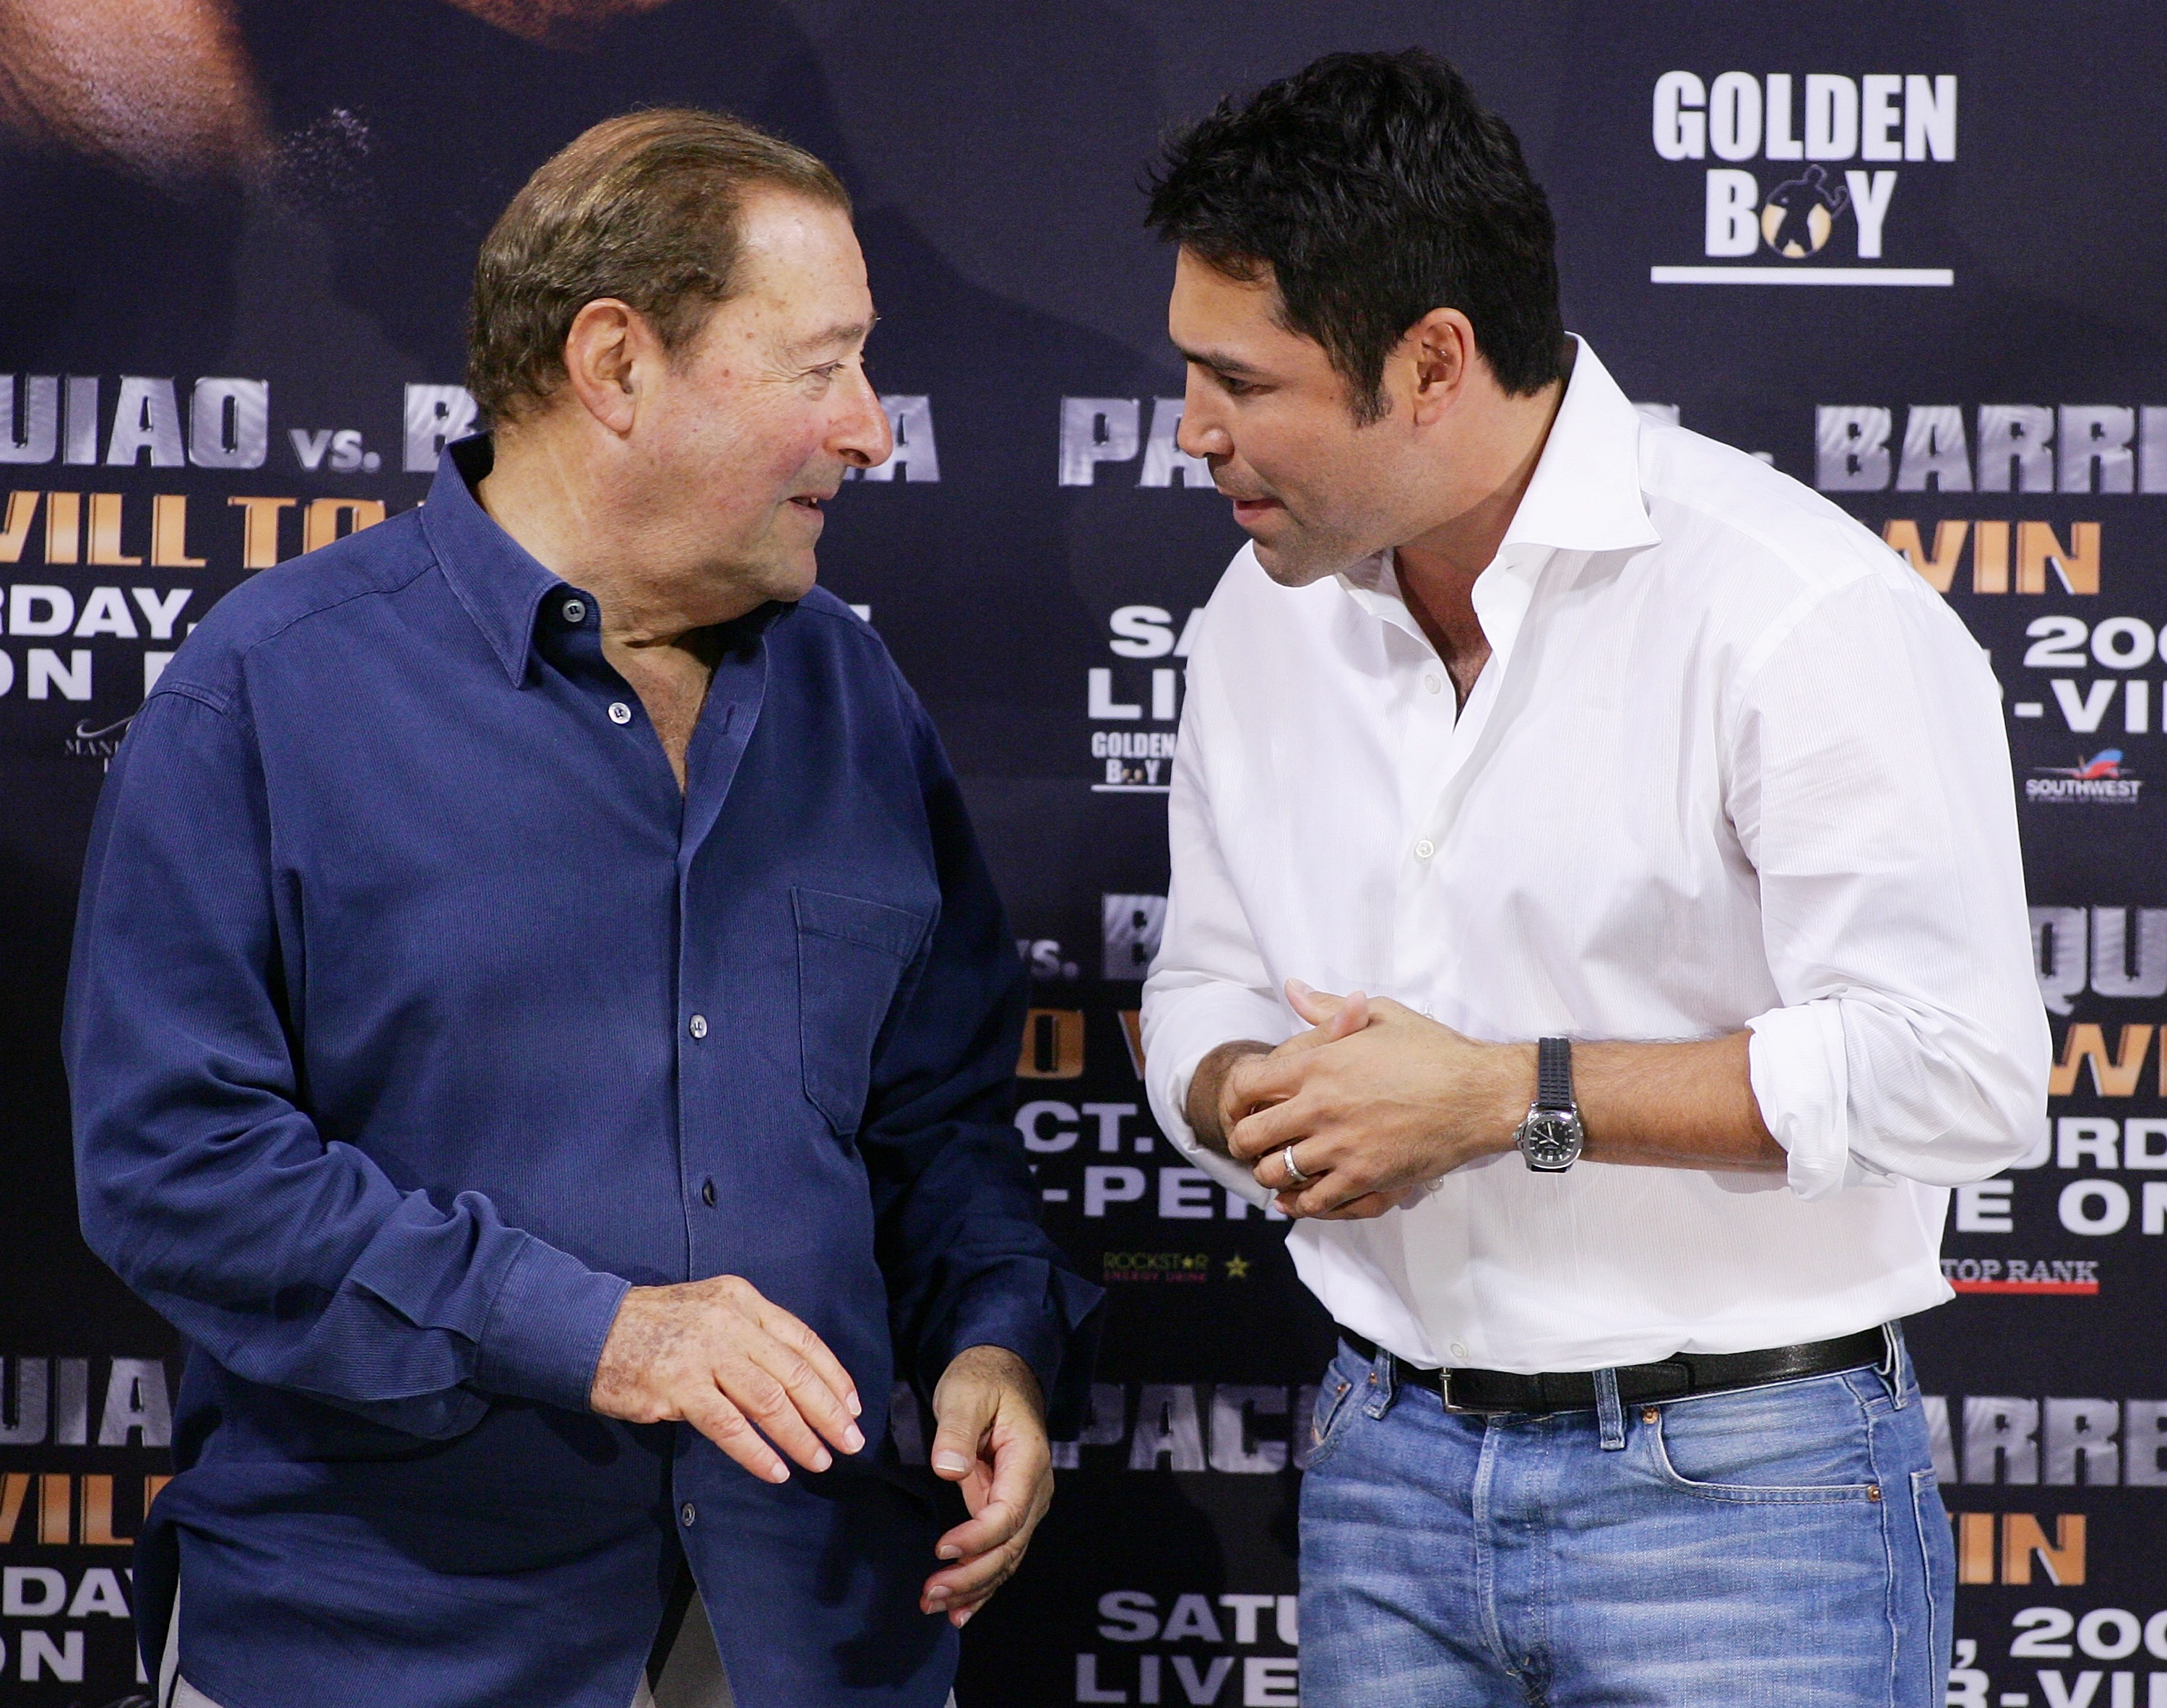 LAS VEGAS - OCTOBER 05:  Boxing promoter Bob Arum (L) and boxer and president of Golden Boy Promotions Oscar De La Hoya speak at the official weigh-in for boxers Manny Pacquiao and Marco Antonio Barrera at the Mandalay Bay Events Center October 5, 2007 in